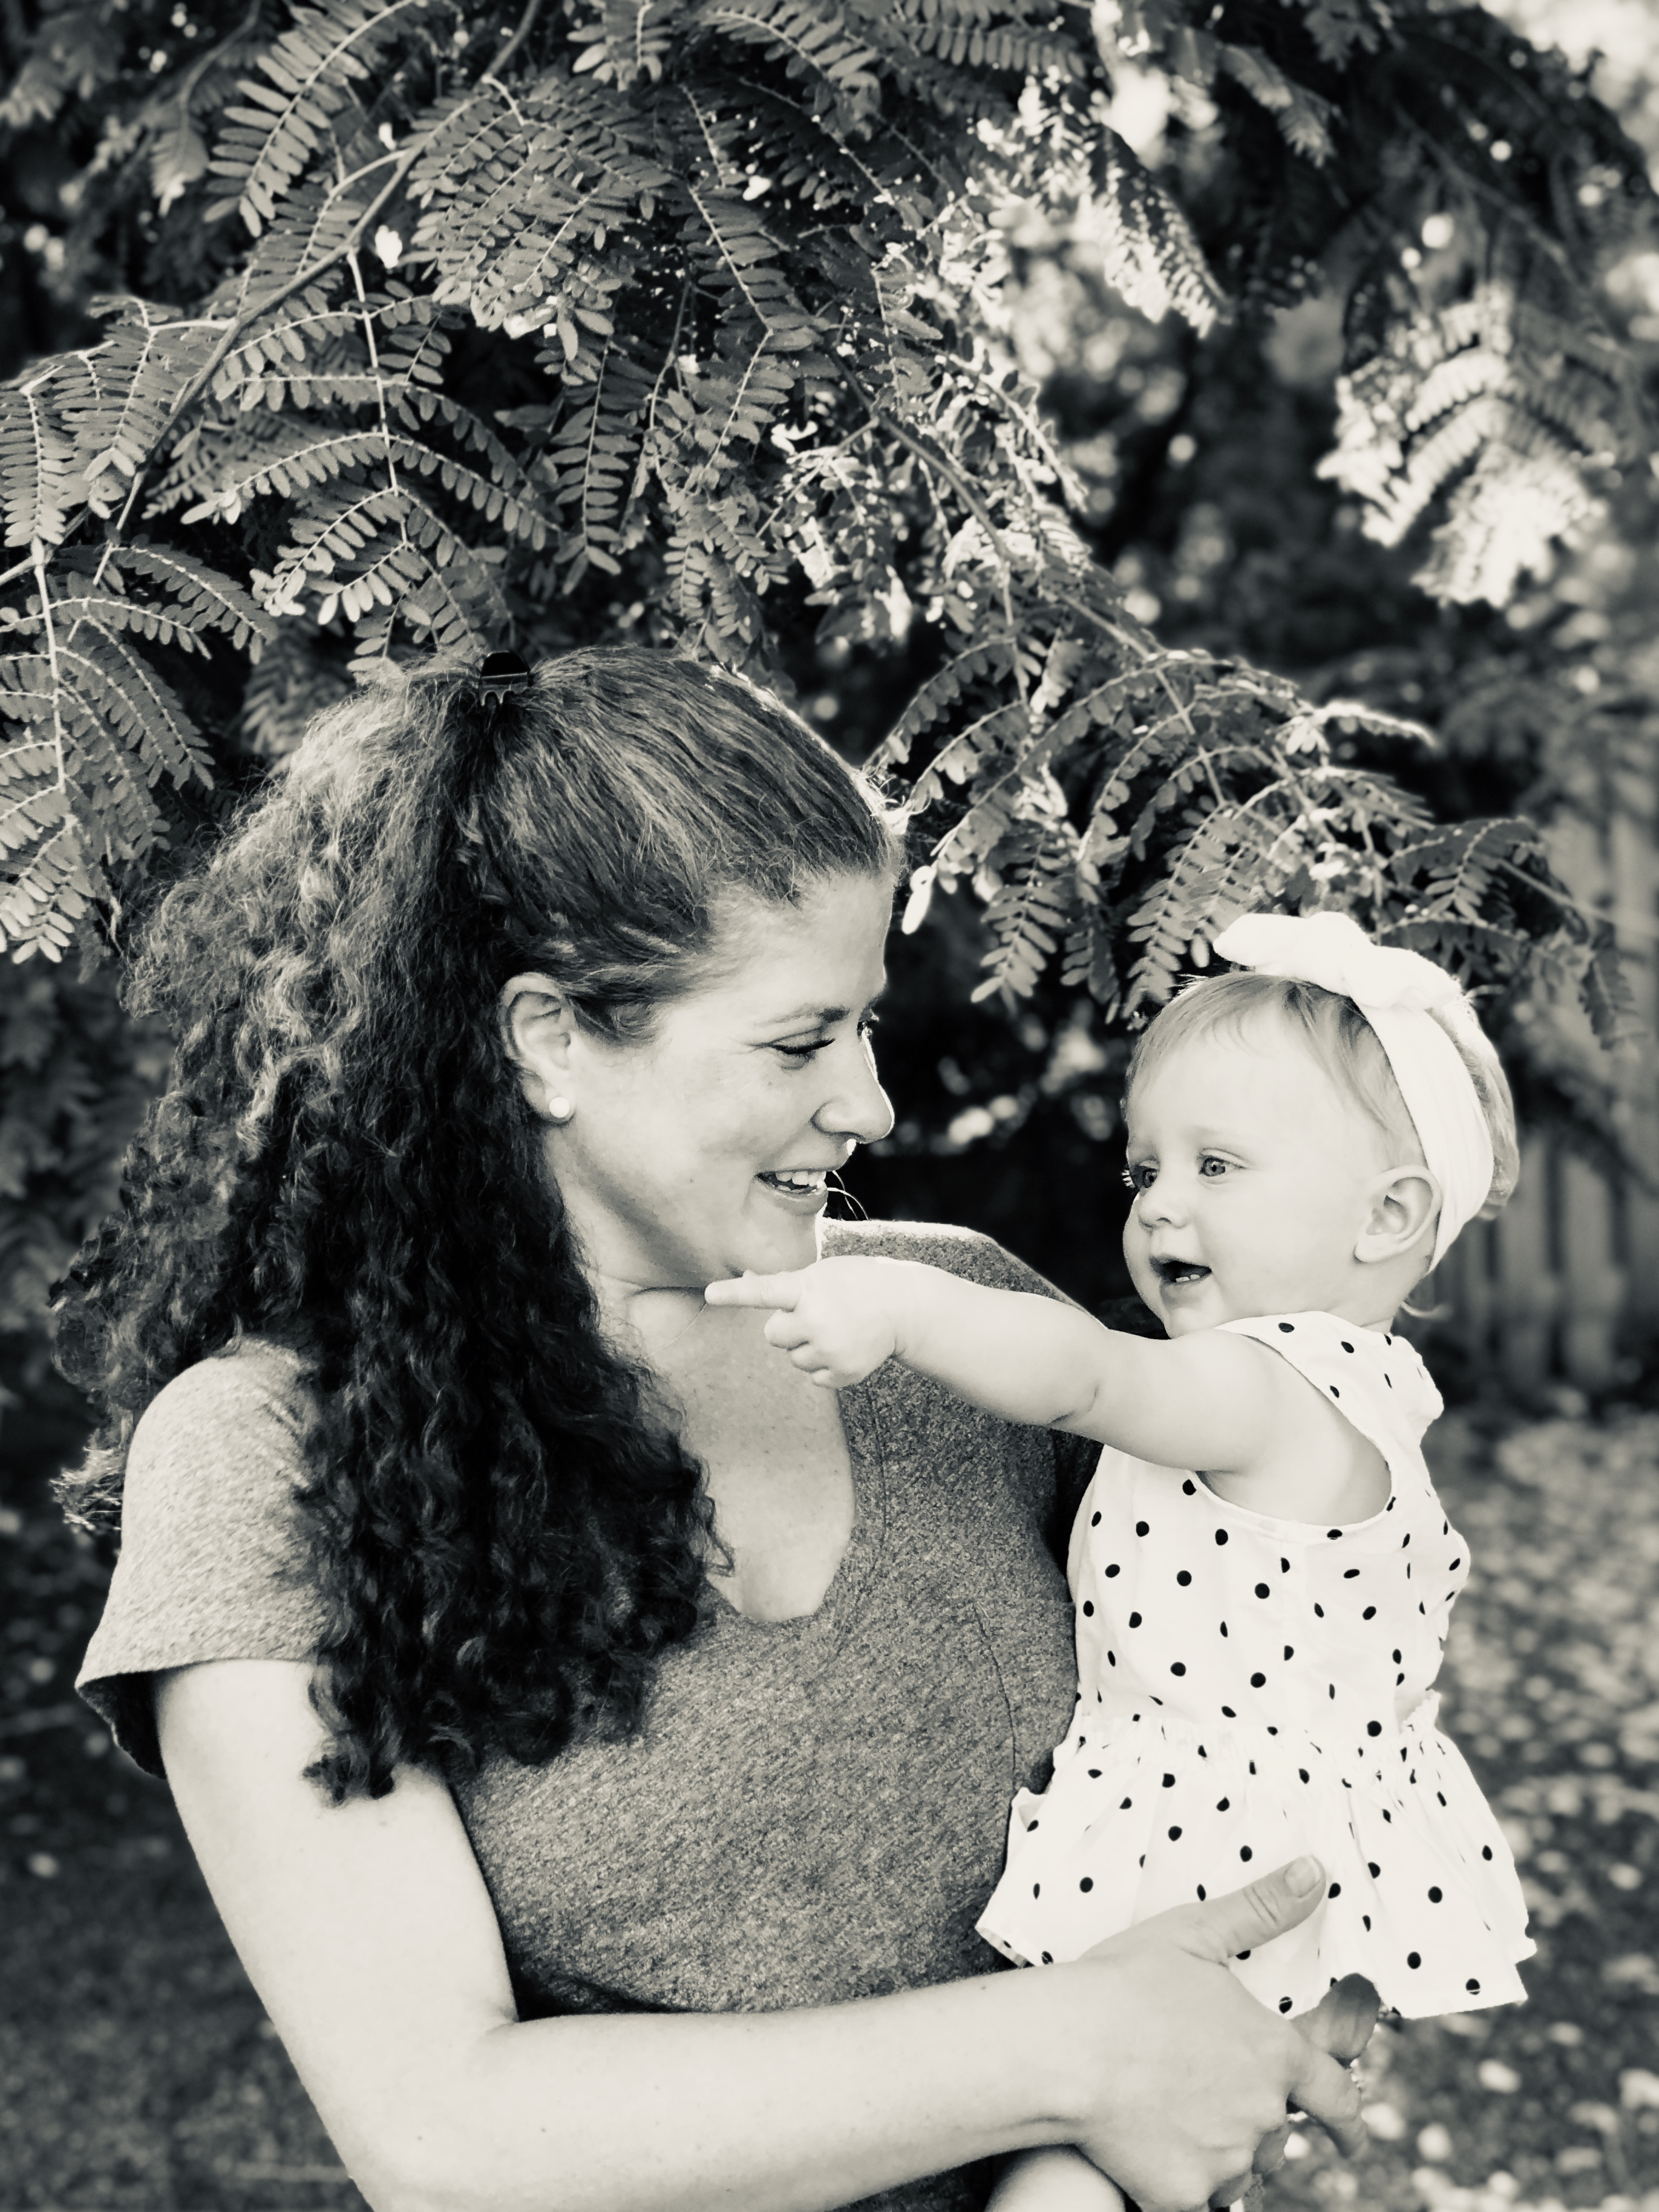 #49 Maternal mental health & the postpartum experience